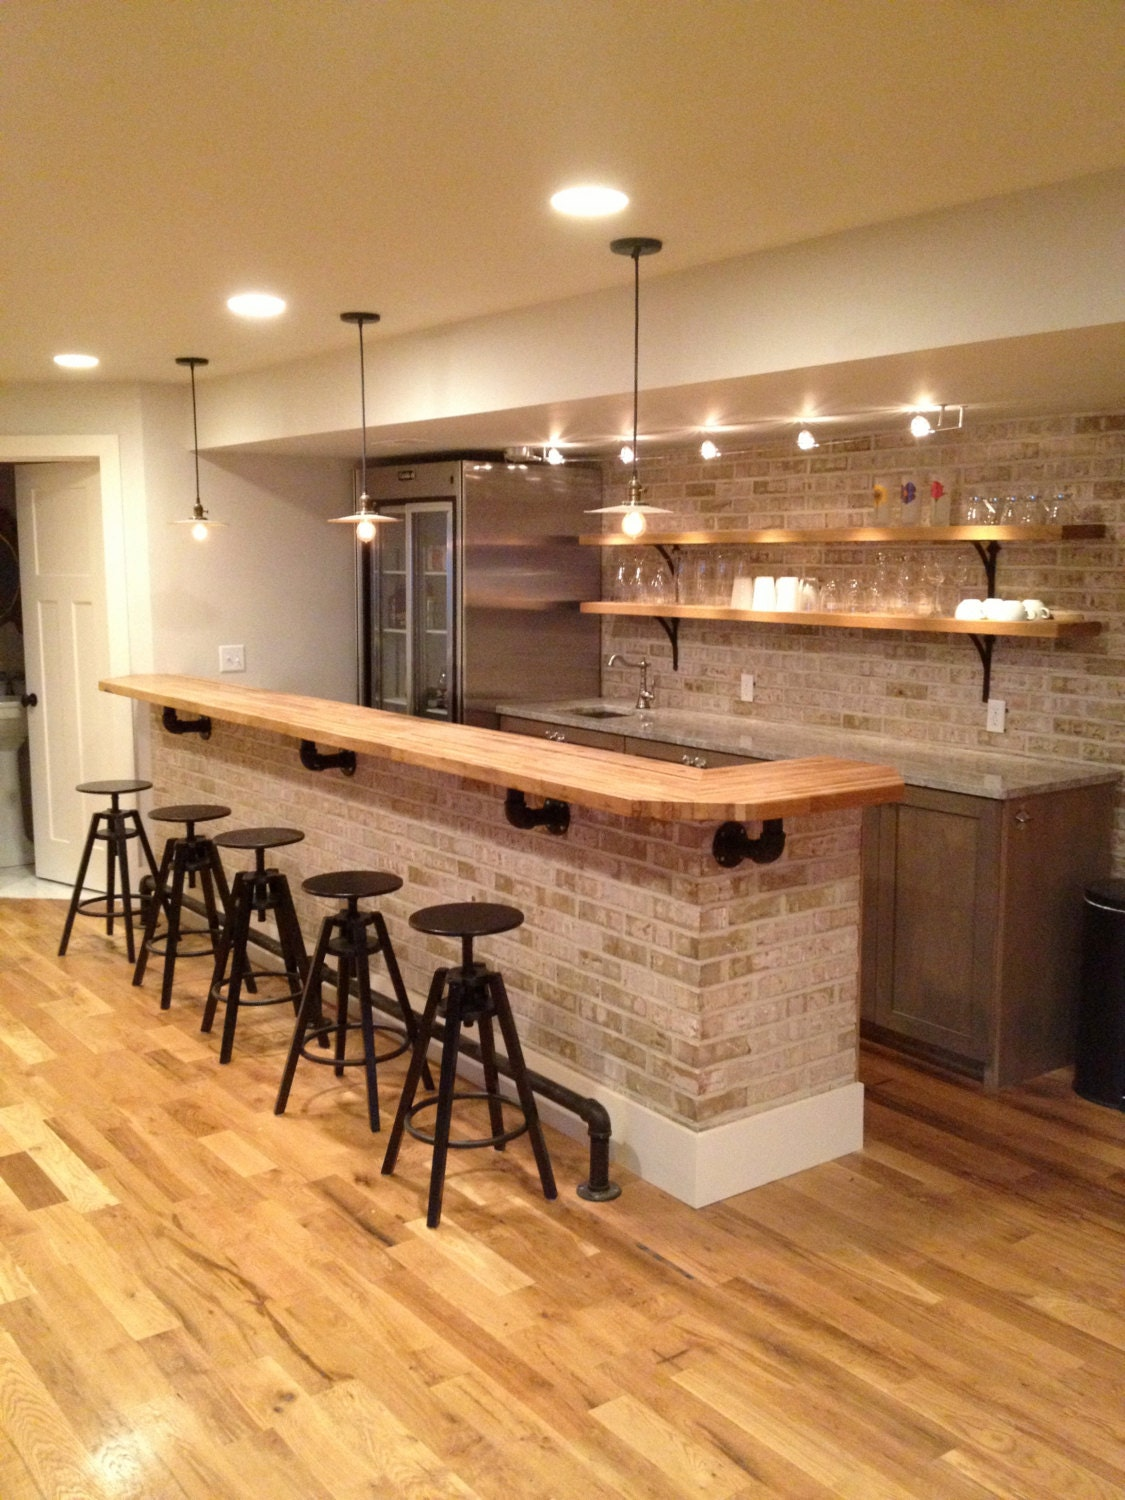 Butcher Block Countertops Price : Butcher block countertops